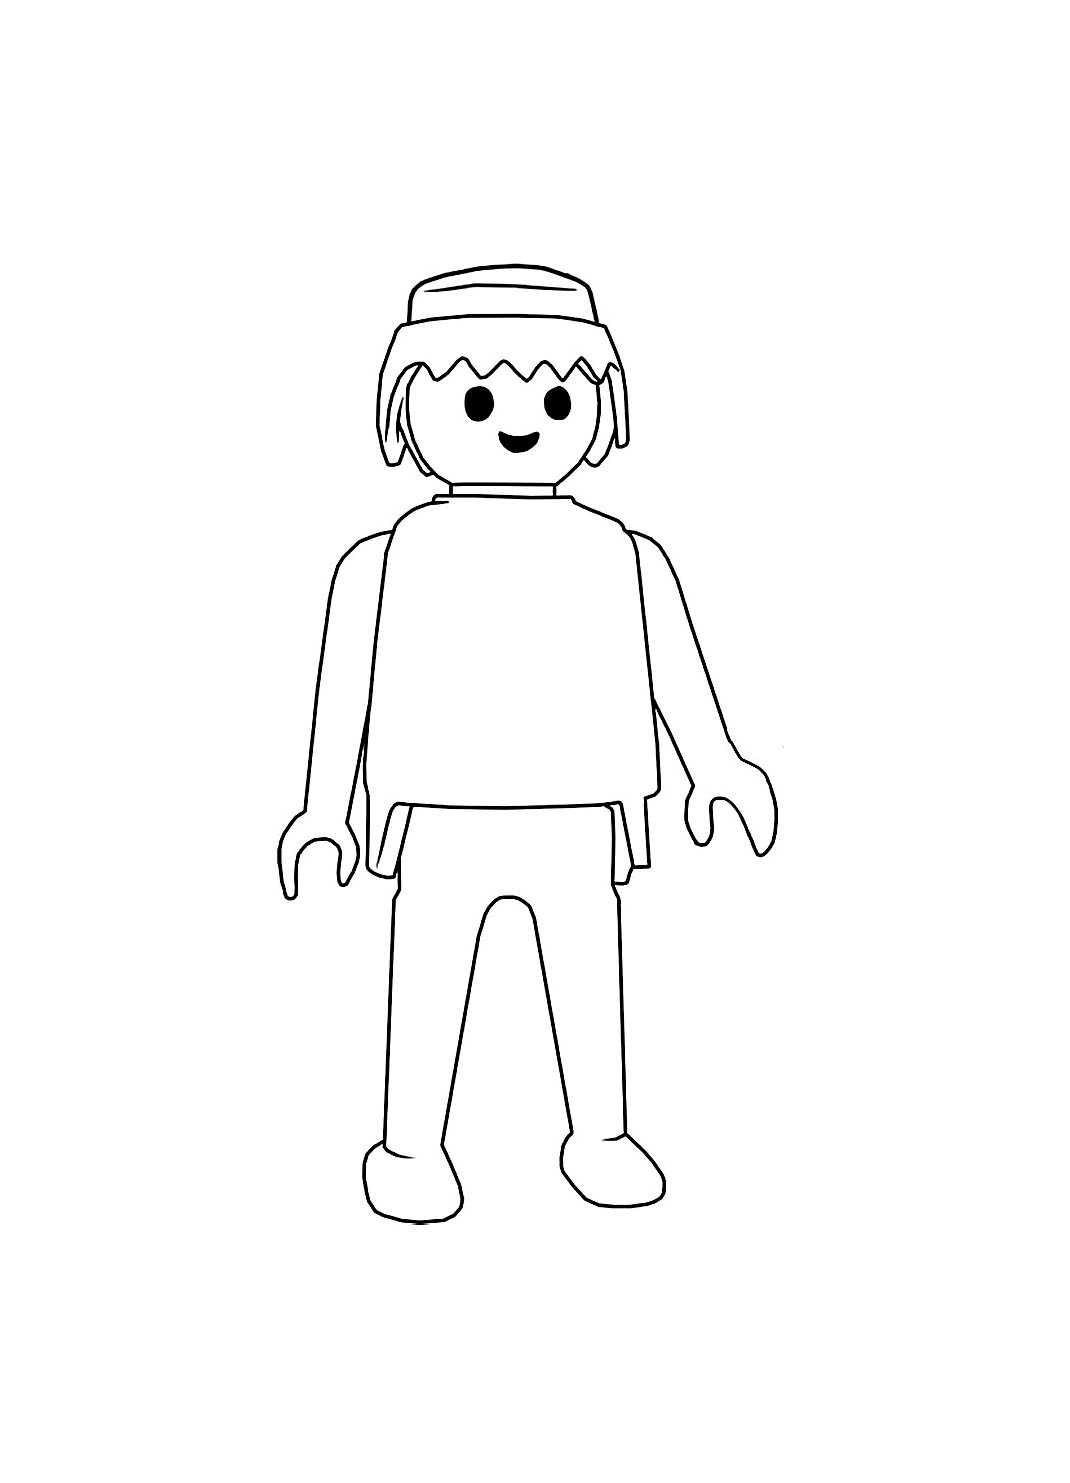 Playmobil personnage simple - Coloriage Playmobil - Coloriages